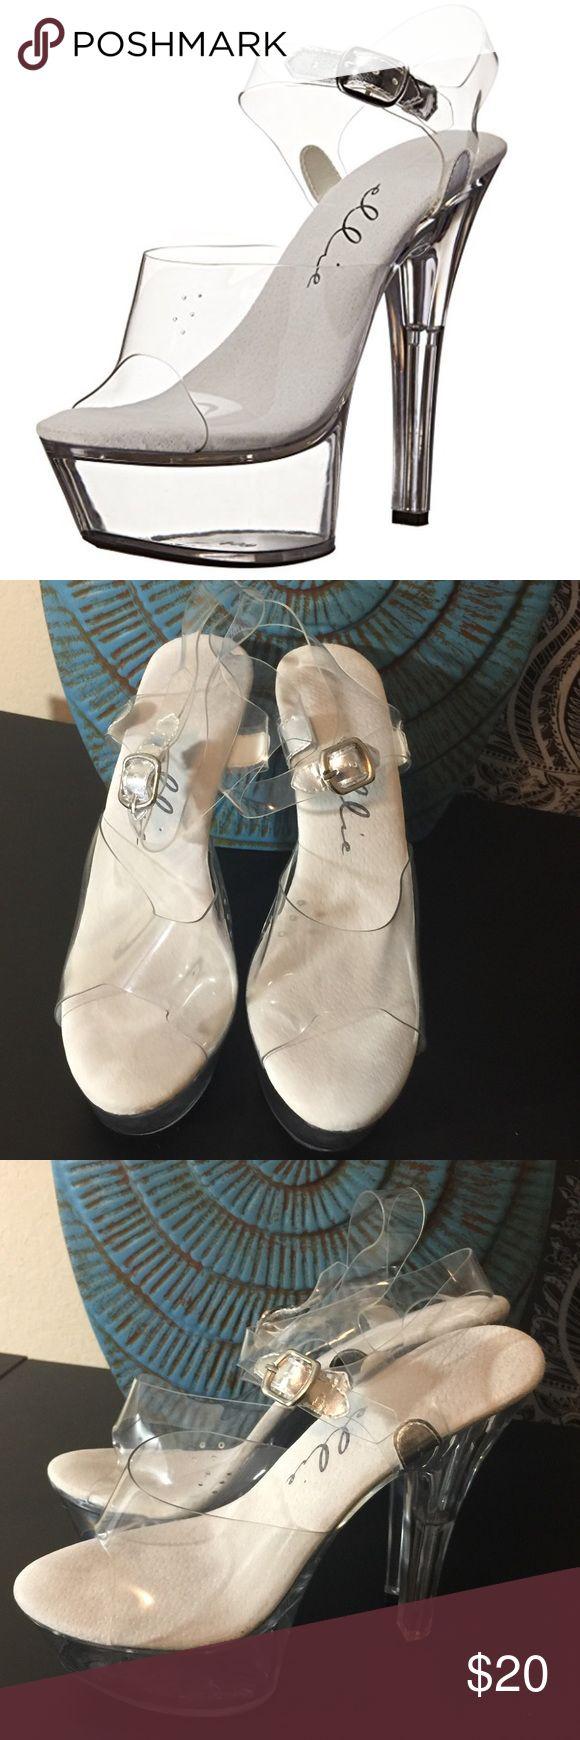 """Ellie 601 Brook Stripper Platforms Clear & White. 6"""" heel. Only worn 1x. Stripper Pole Class in Vegas for my soon to be (now) sister-in-laws bachelorette.  So much fun but I took the shoes off after about 10 min.  Couldn't get through the class with them on.  Lol.  #POSHMARK #BLING #RODEO #FASHIONISTA #COWGIRL #SOUTHWEST #ARIAT #AZTEC #WESTERN #CHIC #FAITH #RUNWAY #CROSS #TRIBAL #BOHO #KENDRA #NAVAJO #STELLA  #SOUTHERN #SPARKLE #CHIC #VEGAS #STRIPPERSHOES #PLATFORMS Ellie Shoes Platforms"""